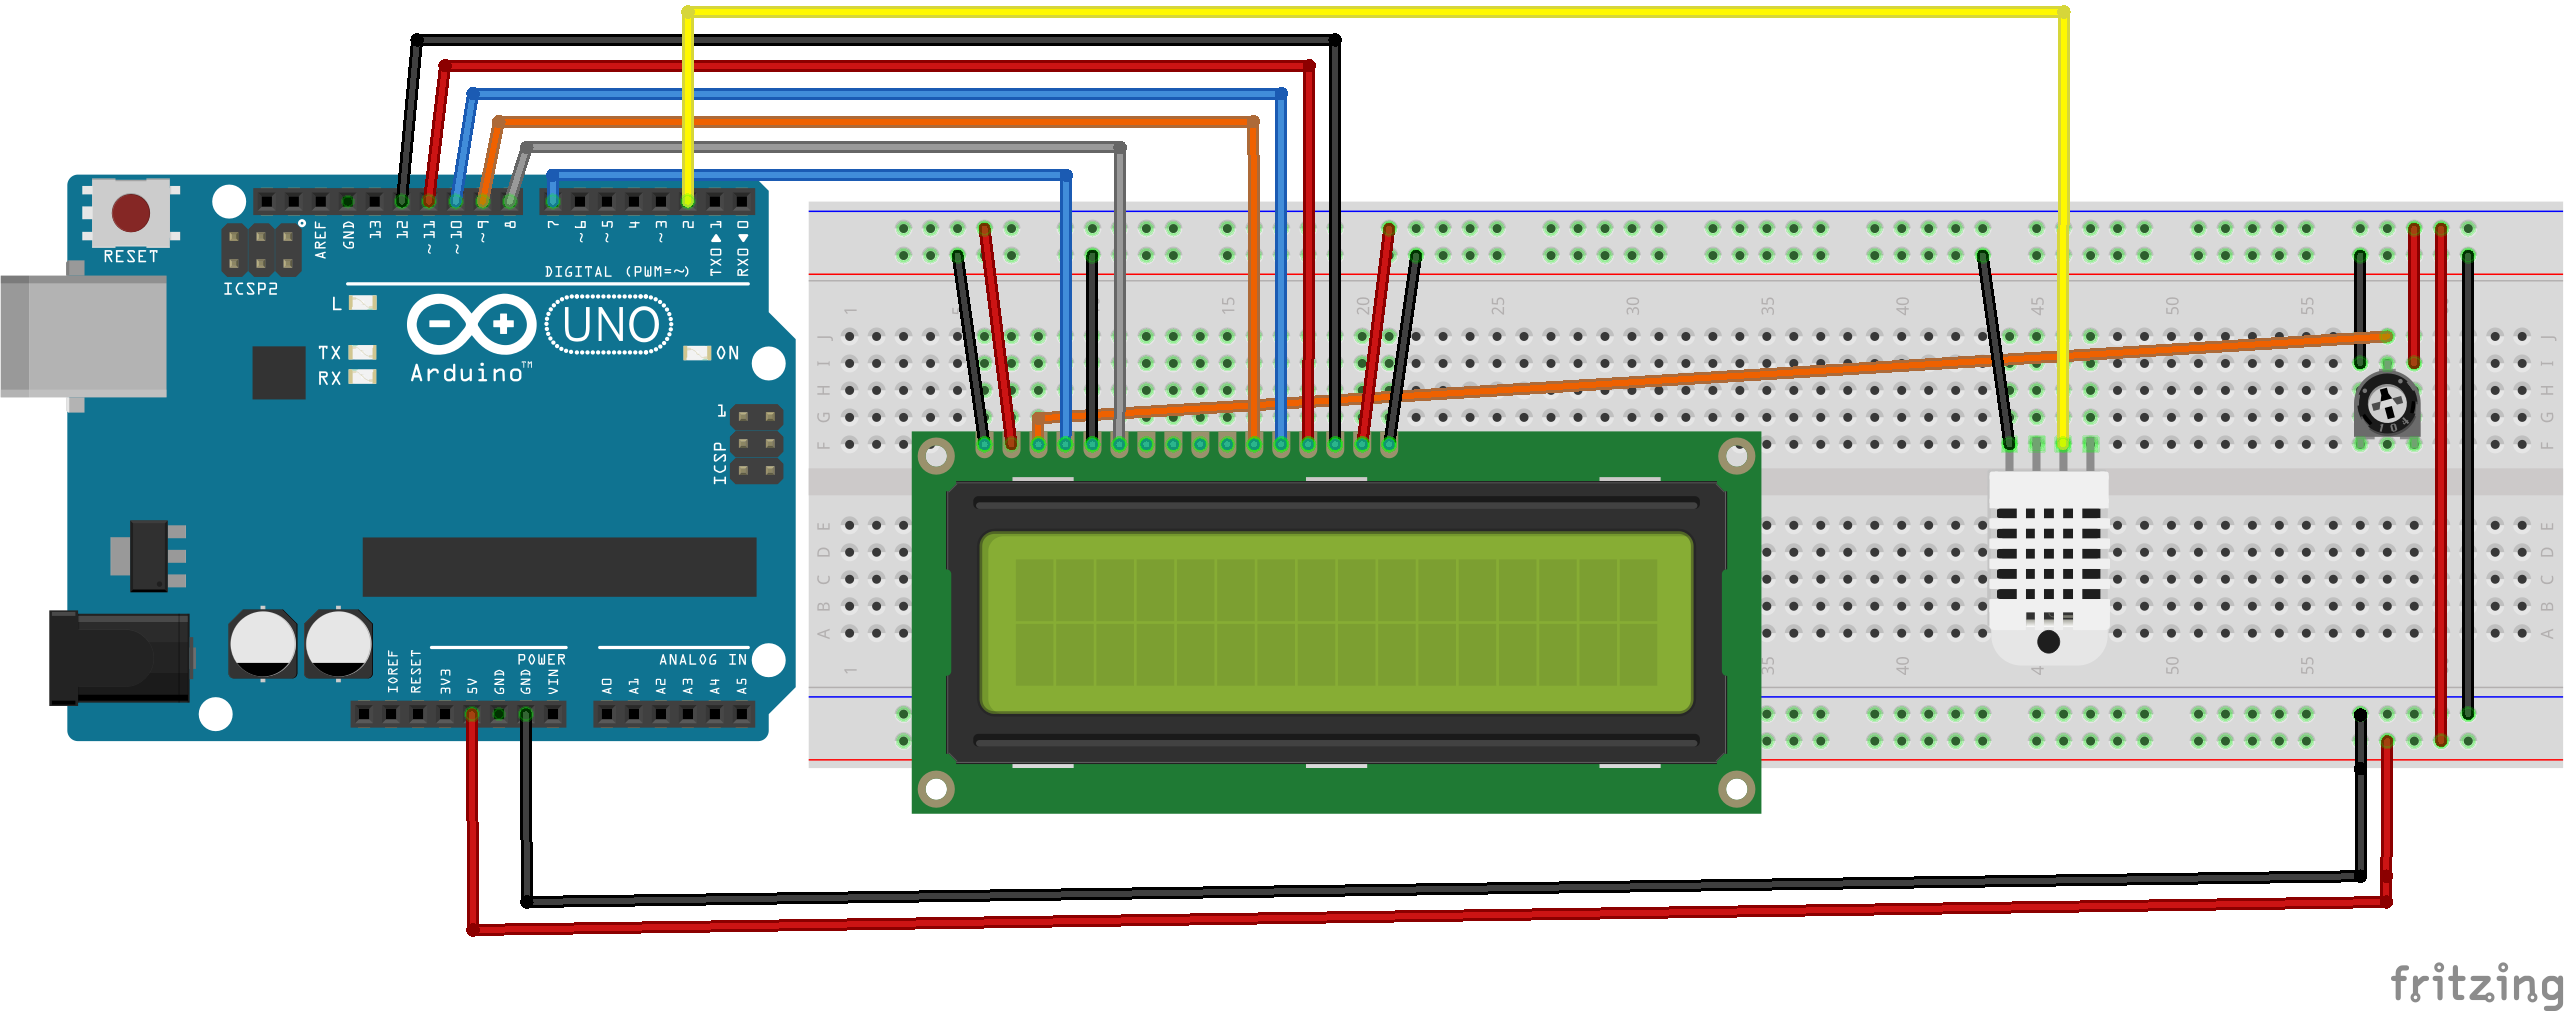 Arduino Using Dht11 Genbays Circuit For Measuring Temperature A Thermistor And Image Result Dht With Lcd